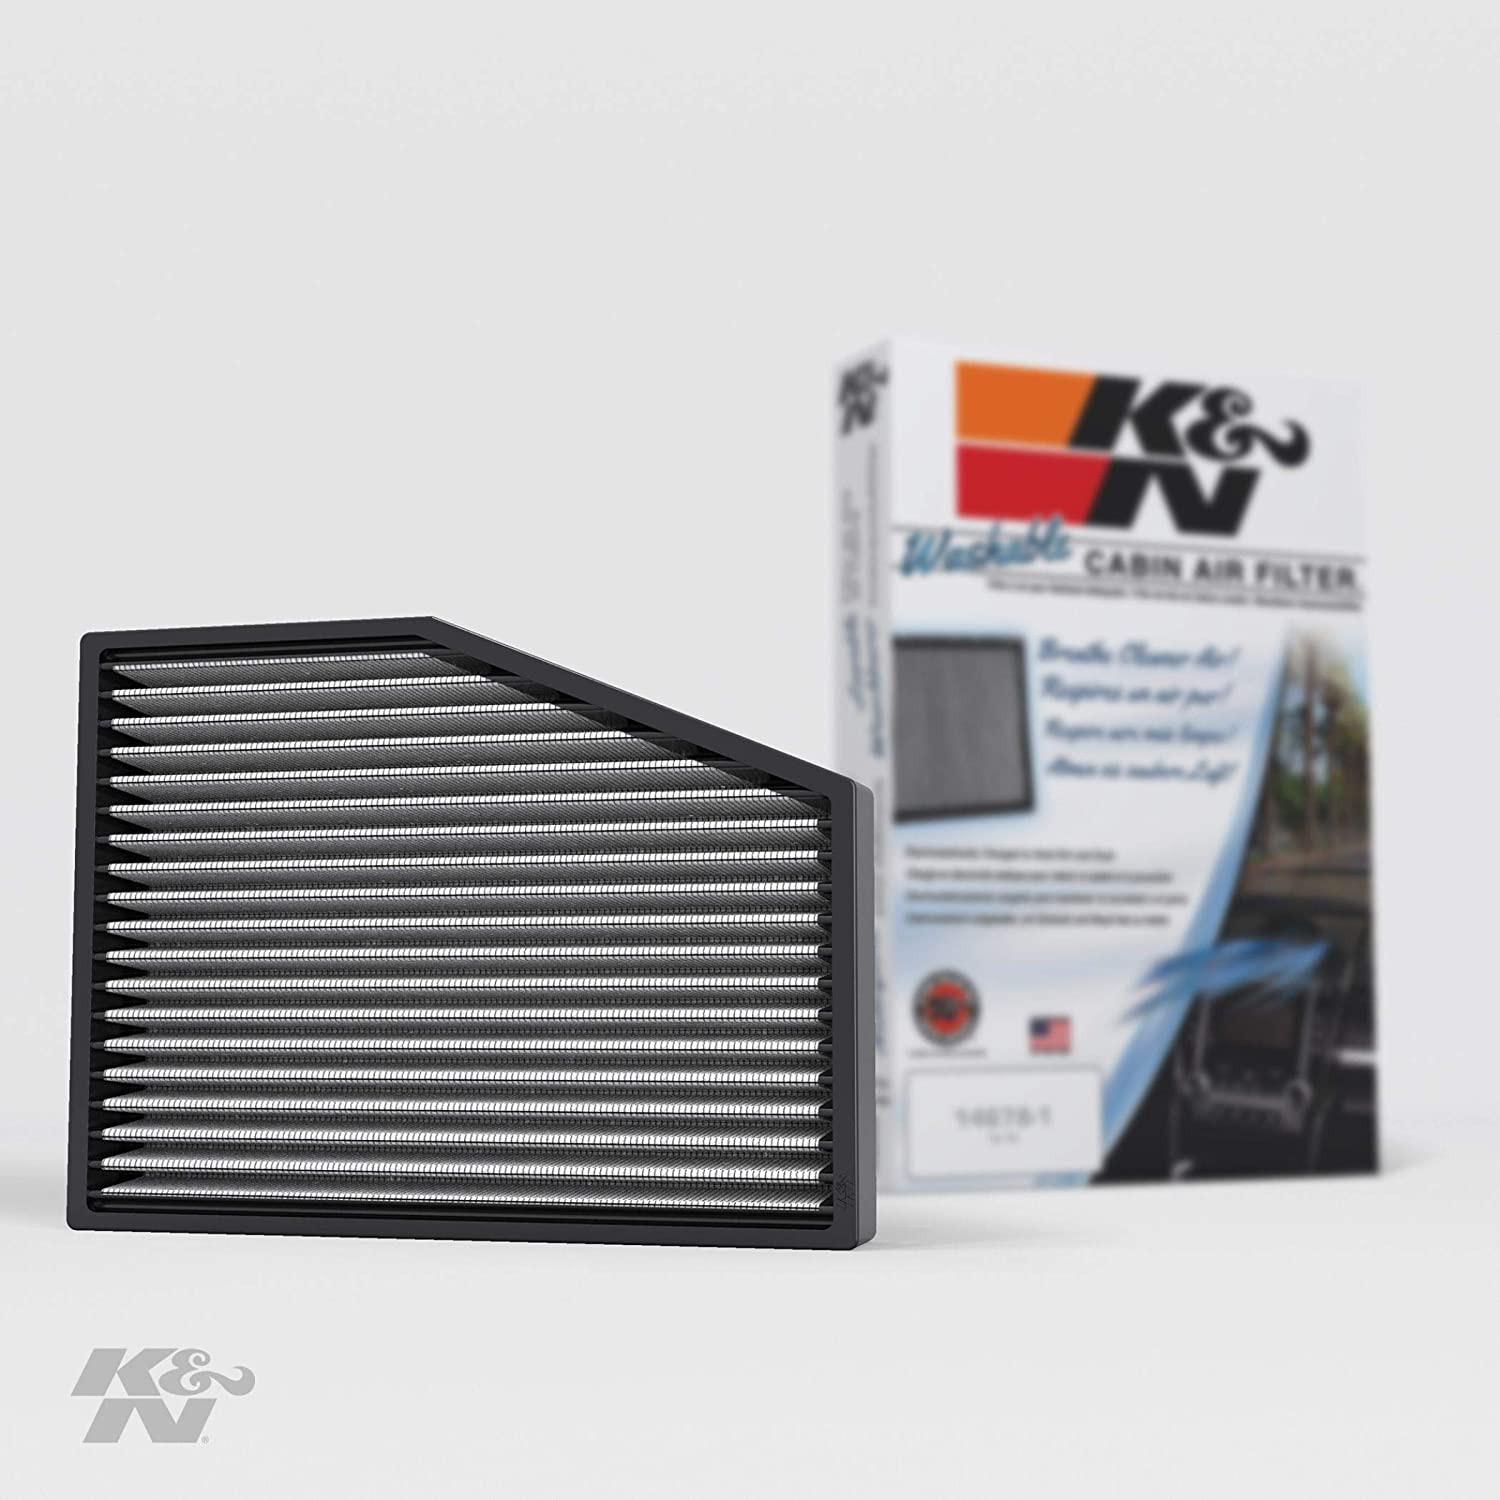 K&N Premium Cabin Air Filter: High Performance, Washable, Lasts for the Life of your Vehicle:Designed For Select 2003-2019 Volkswagen/Audi/Seat/Skoda Vehicle Models, VF3013